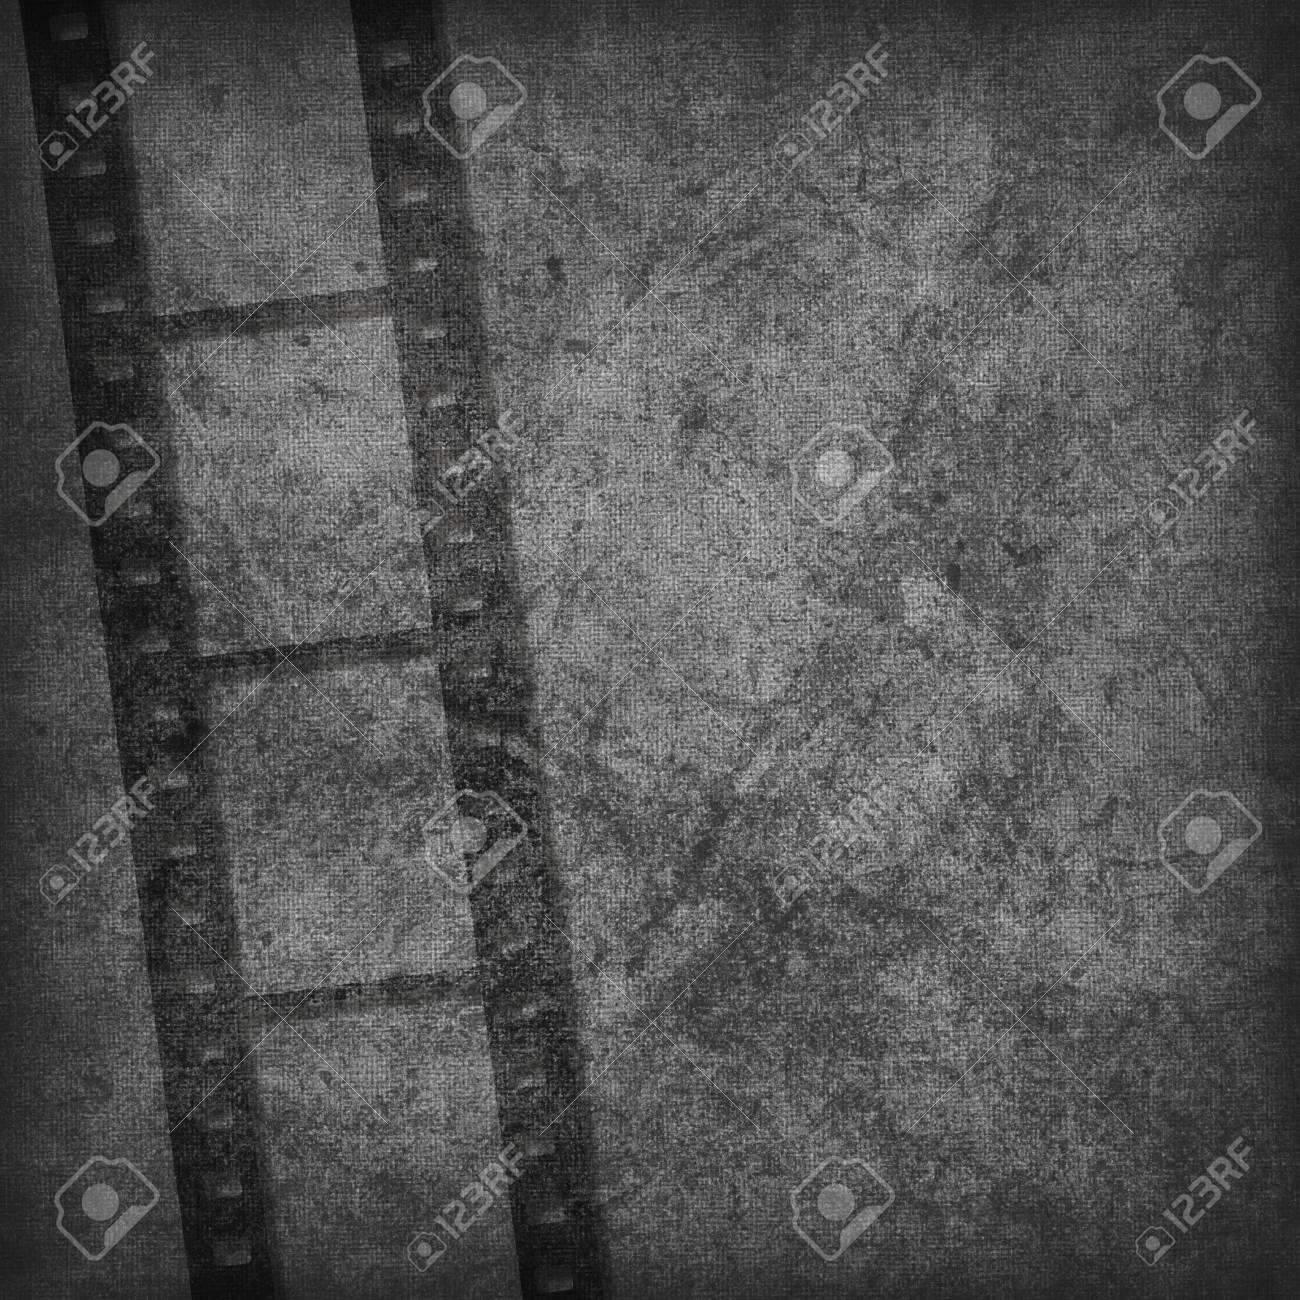 Grunge graphic abstract background with film Stock Photo - 8452321